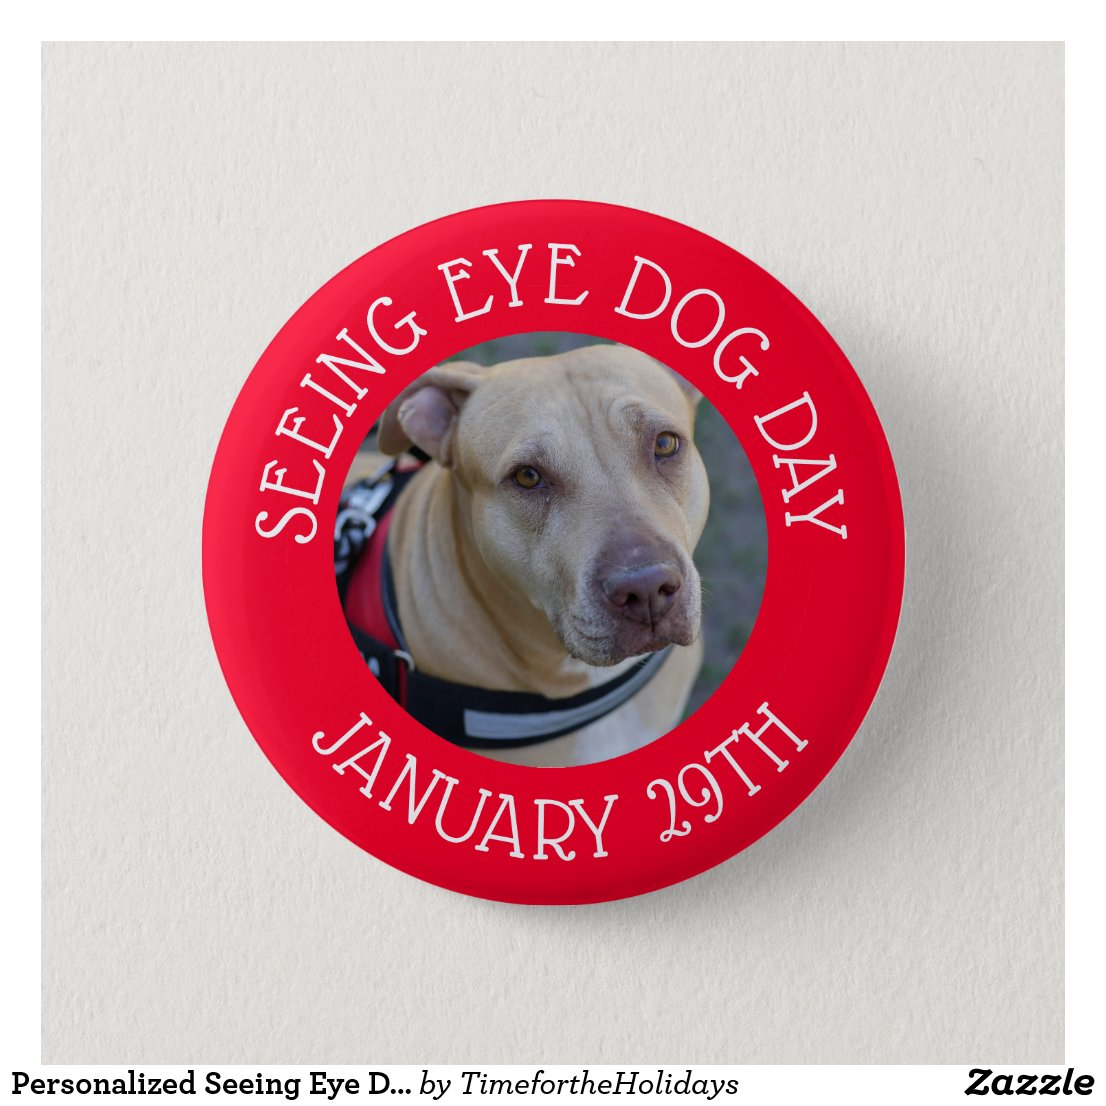 Personalized Seeing Eye Dog Day January 29 Button